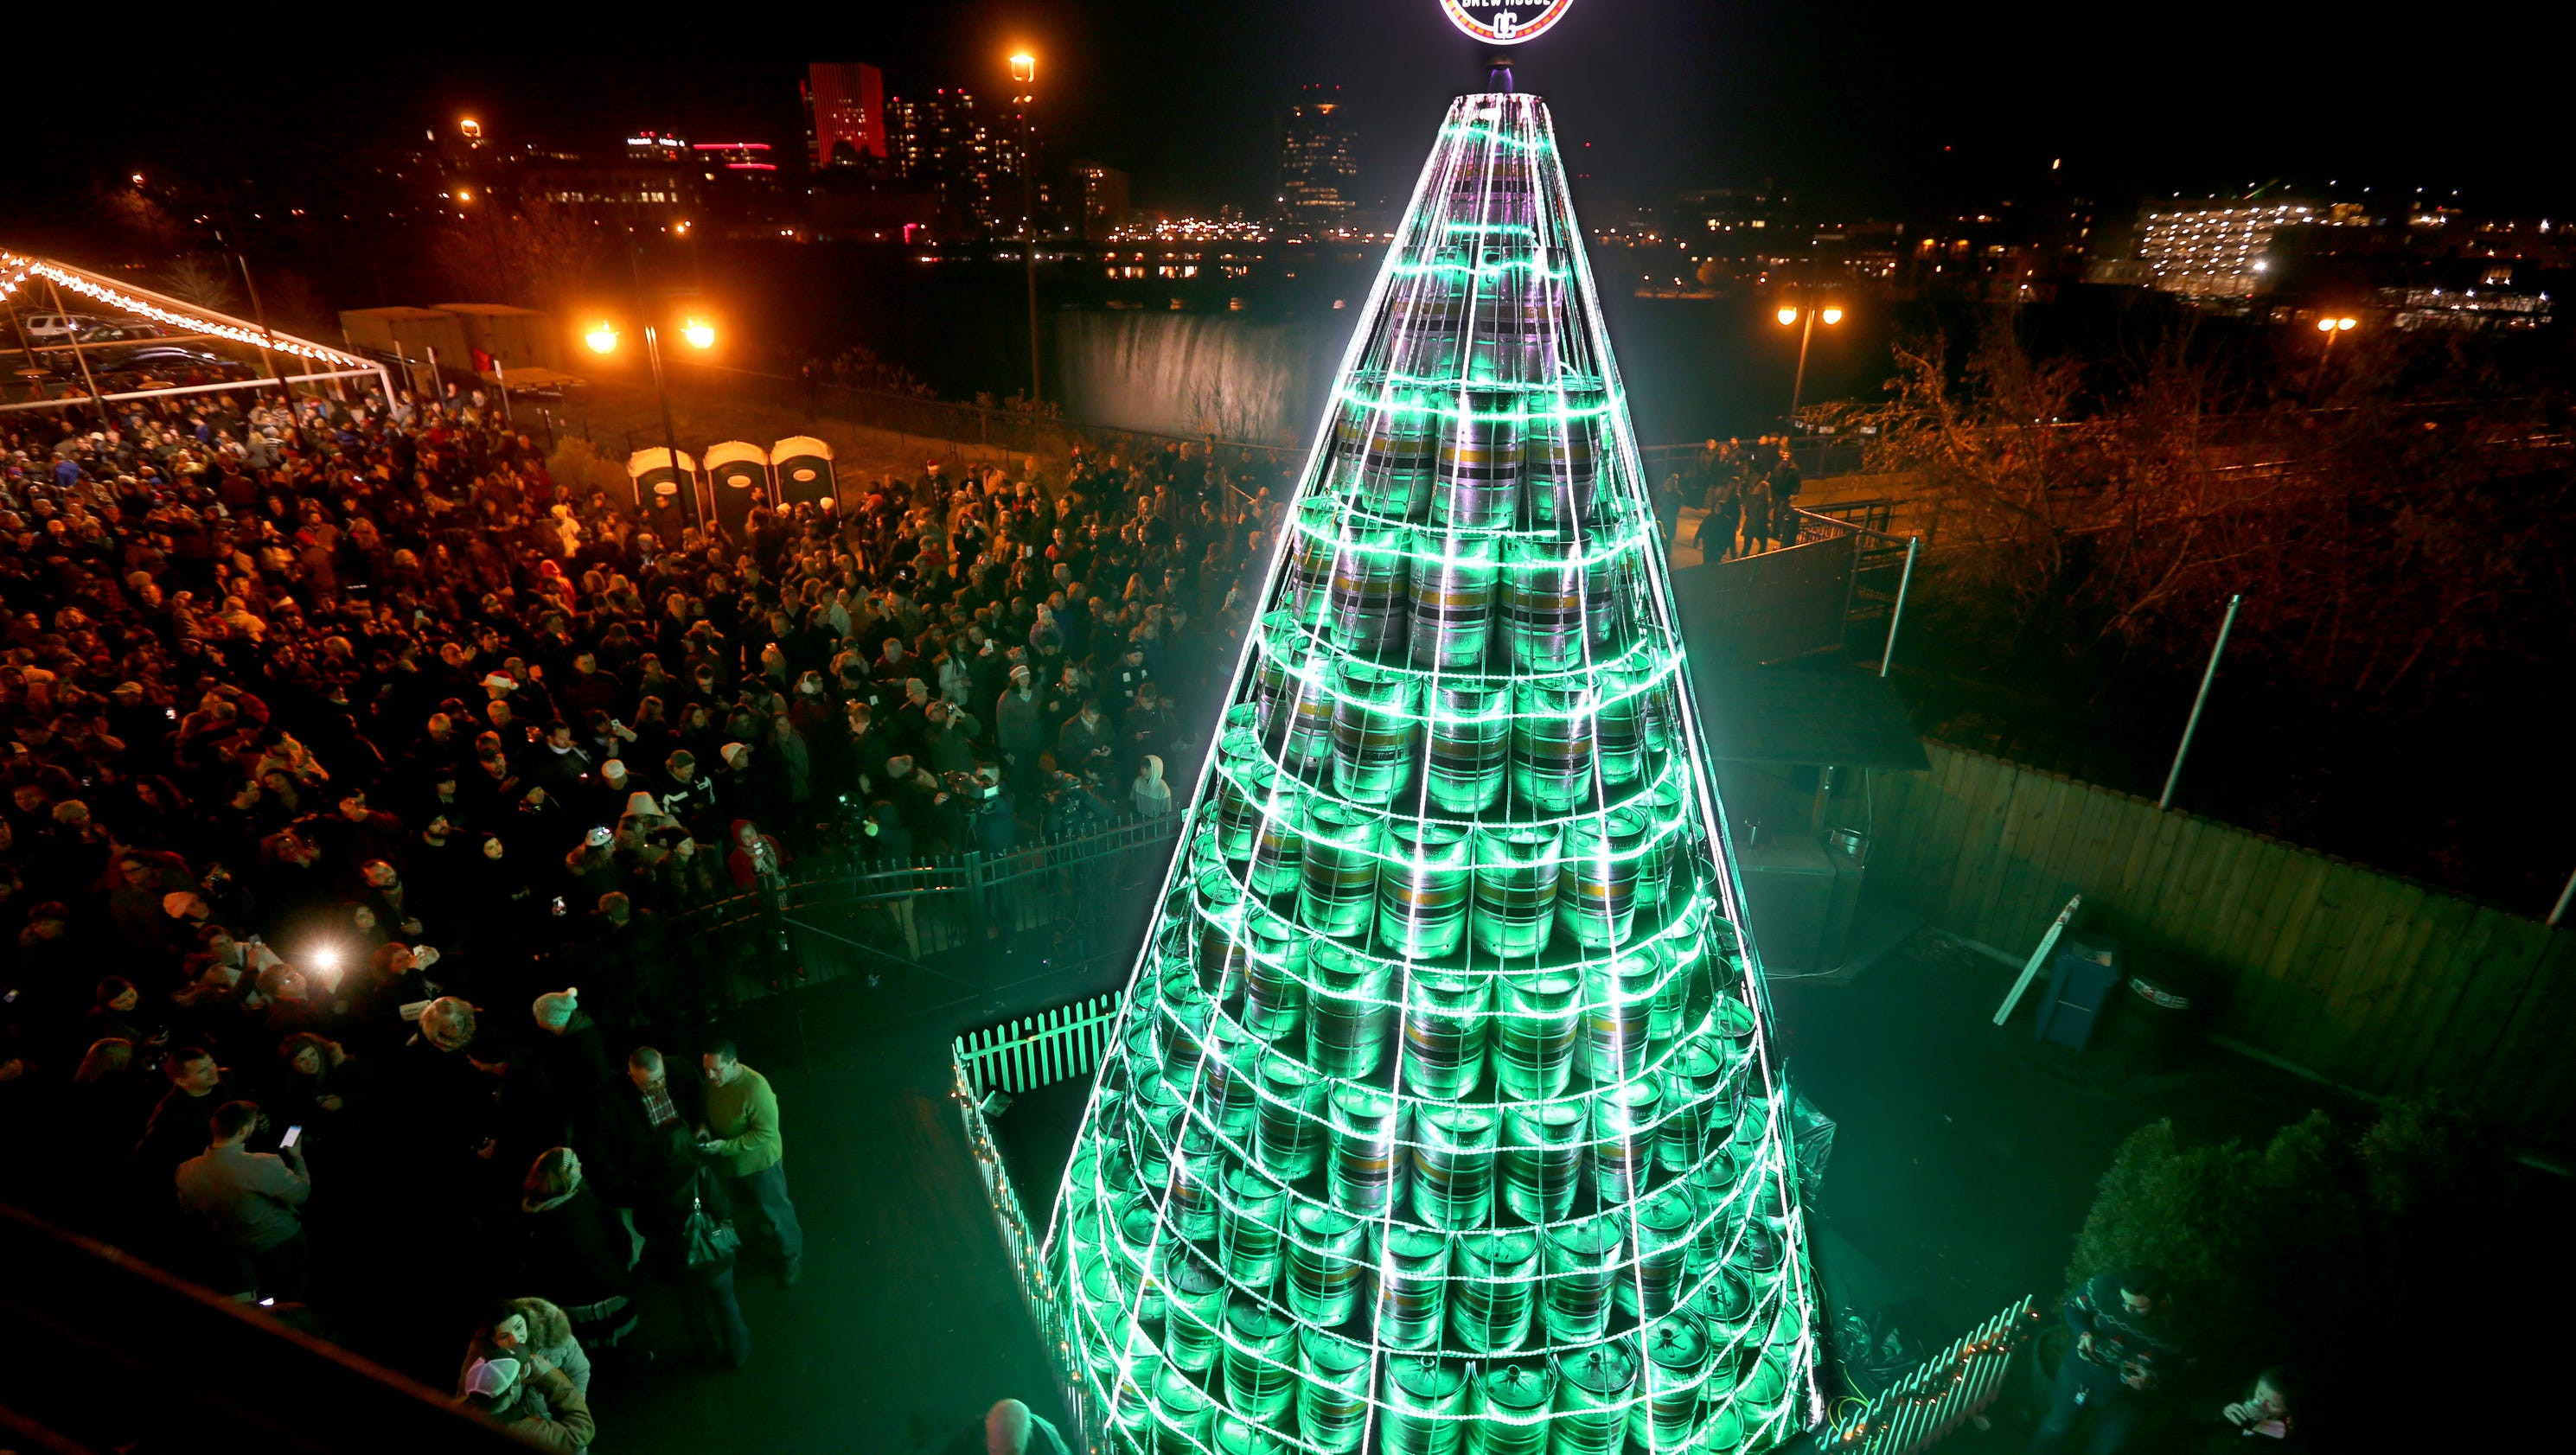 Genesee Christmas Keg Tree Lighting Draws Thousands